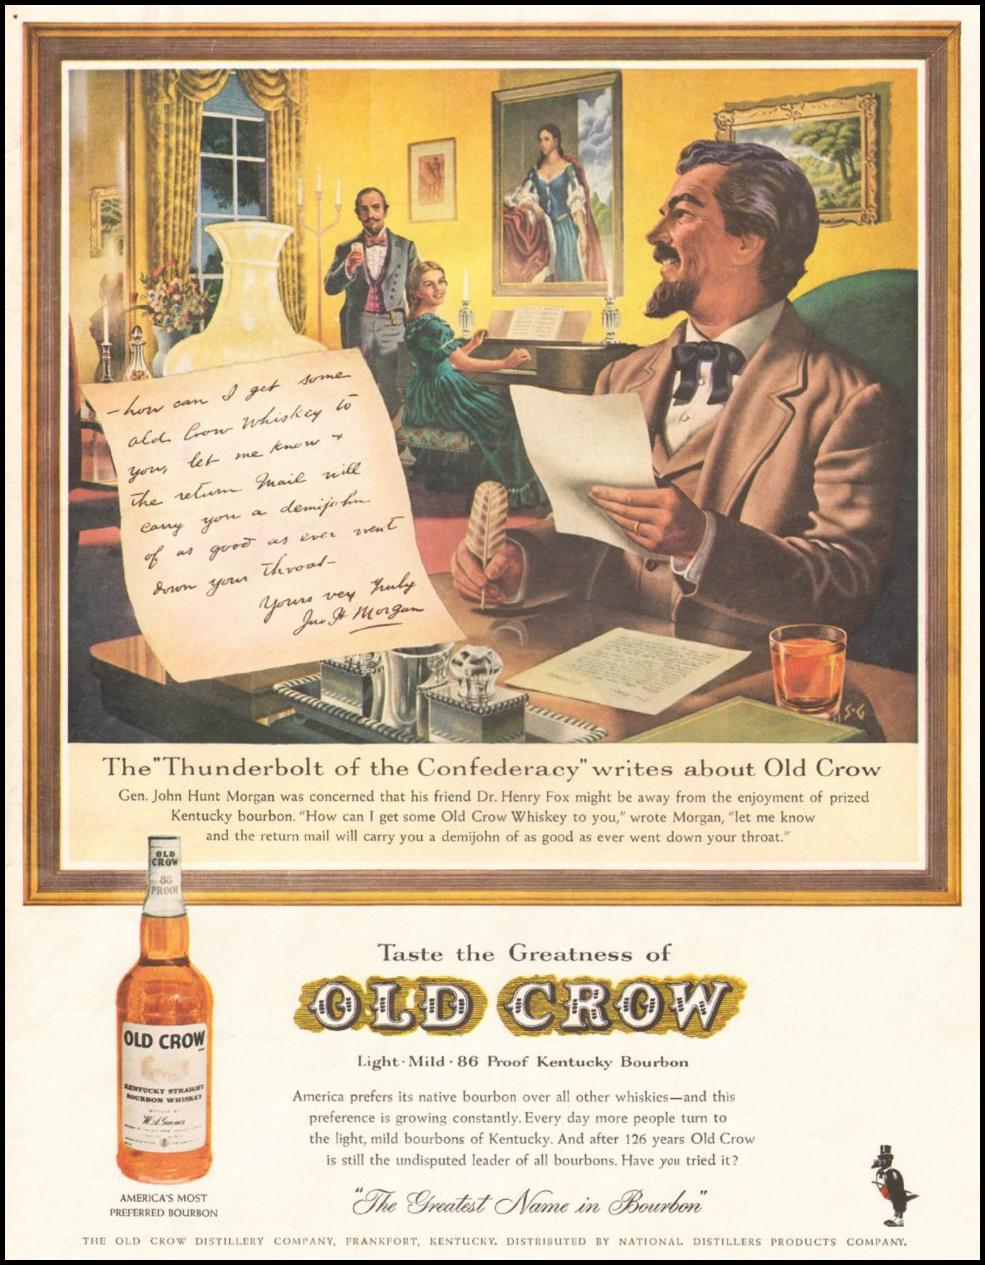 OLD CROW BOURBON WHISKEY LIFE 05/05/1961 INSIDE BACK